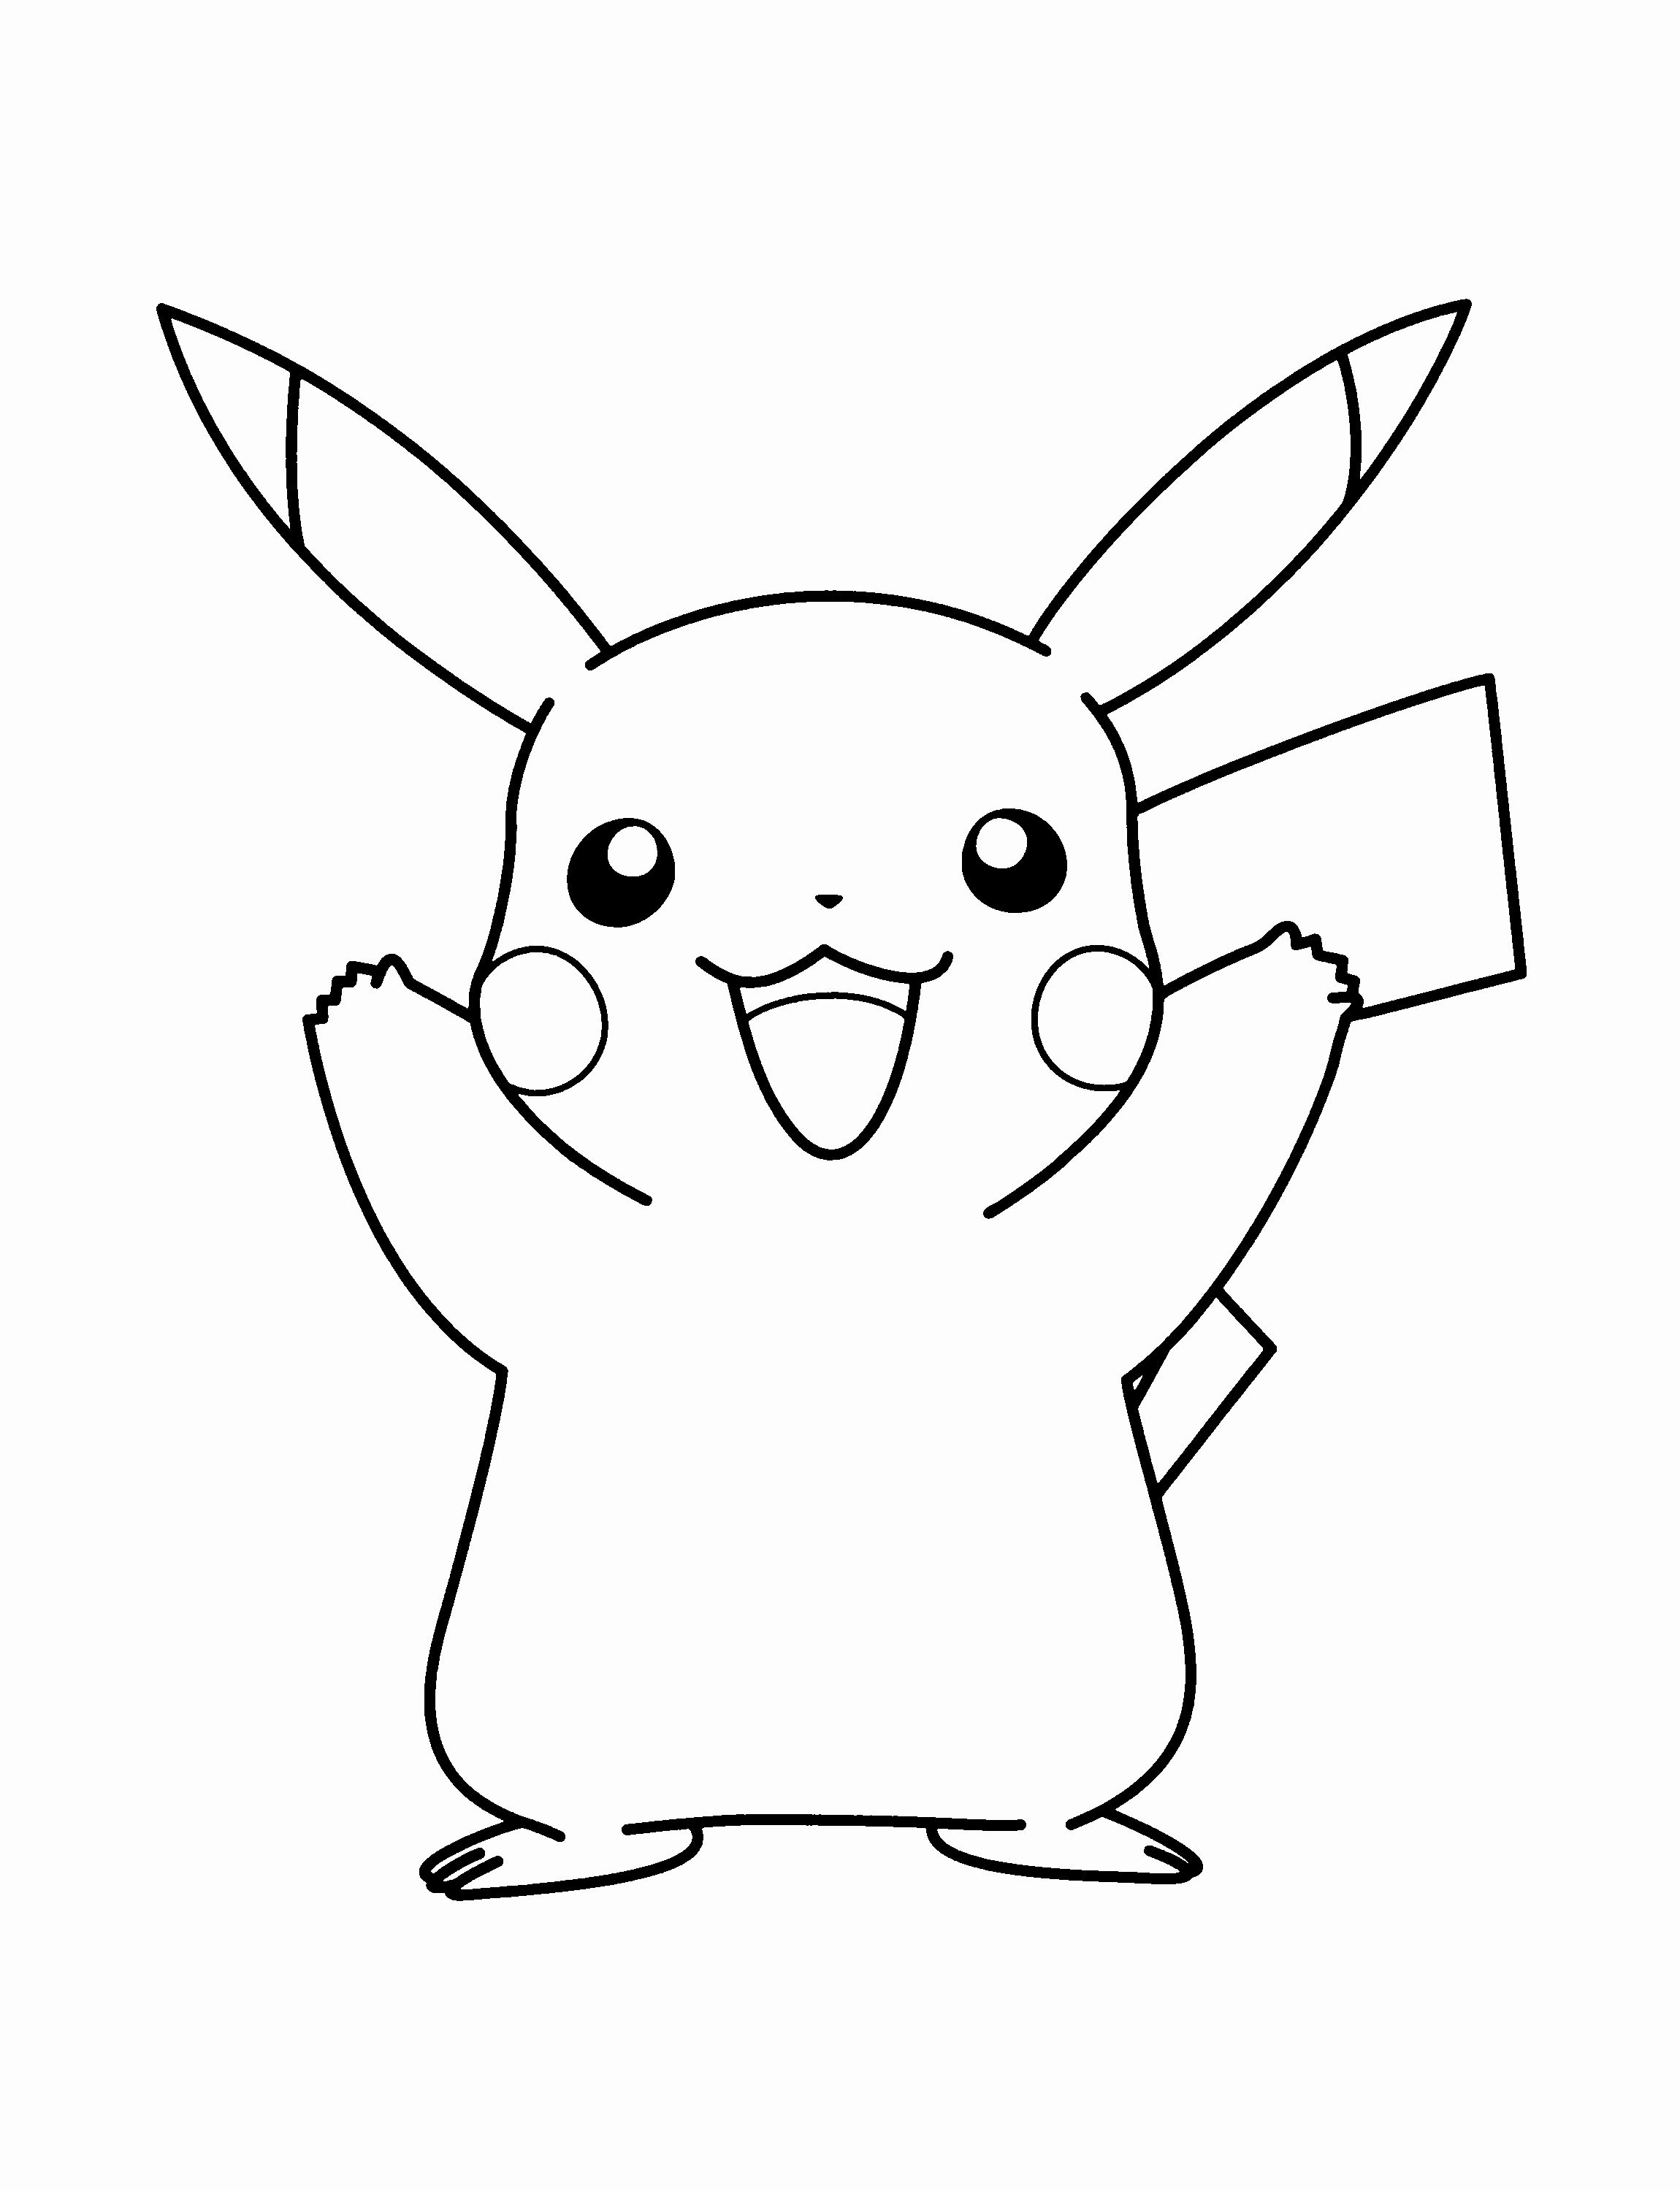 Detective Pikachu Coloring Page Fresh Coloring Page Tv